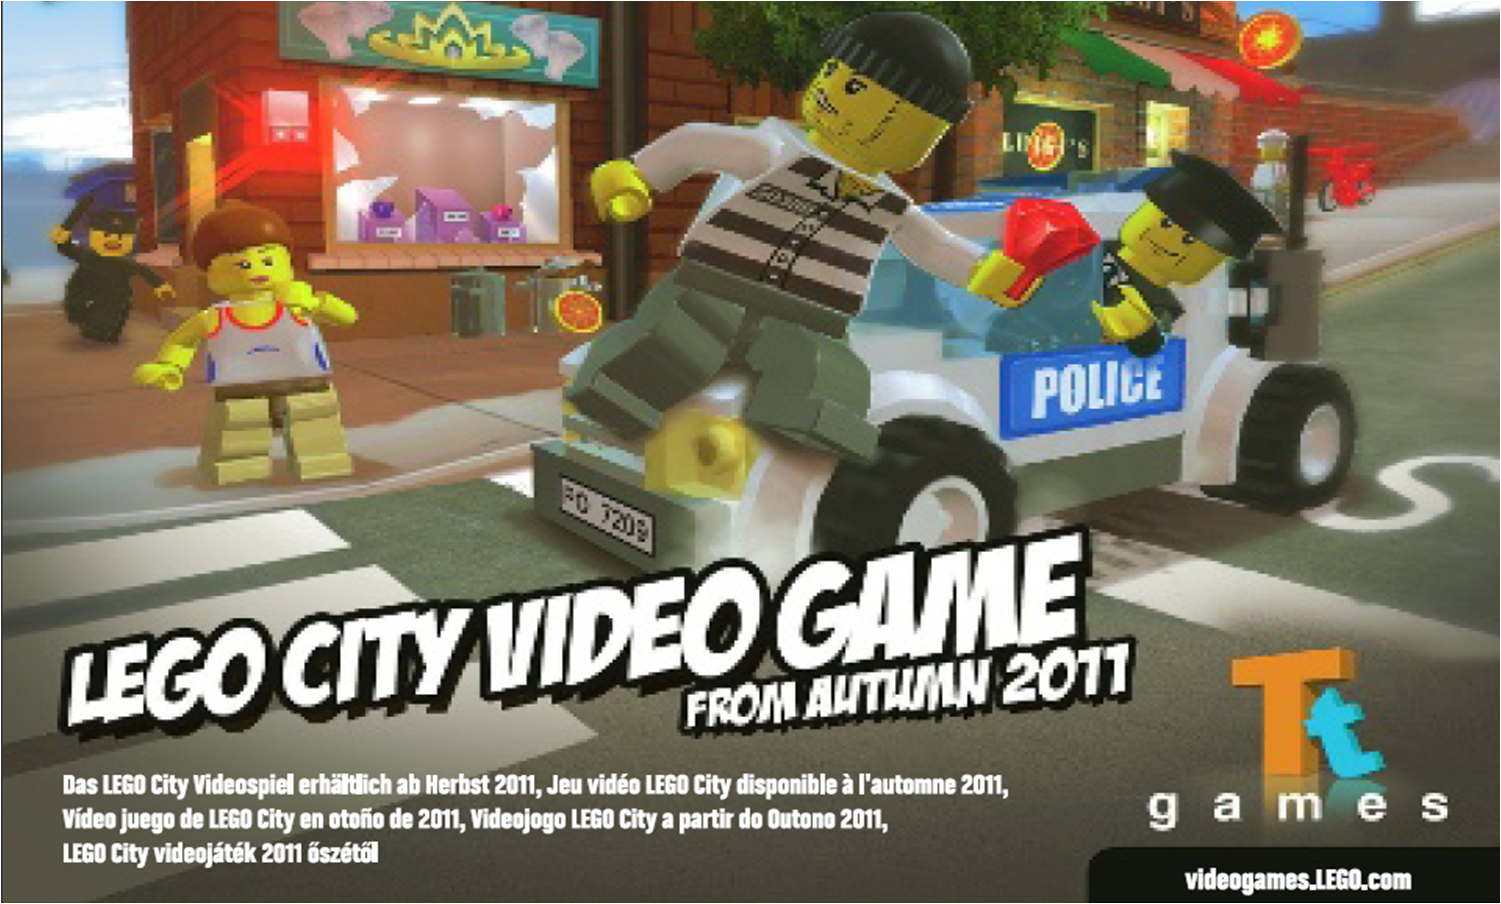 FileLego city video gamepng